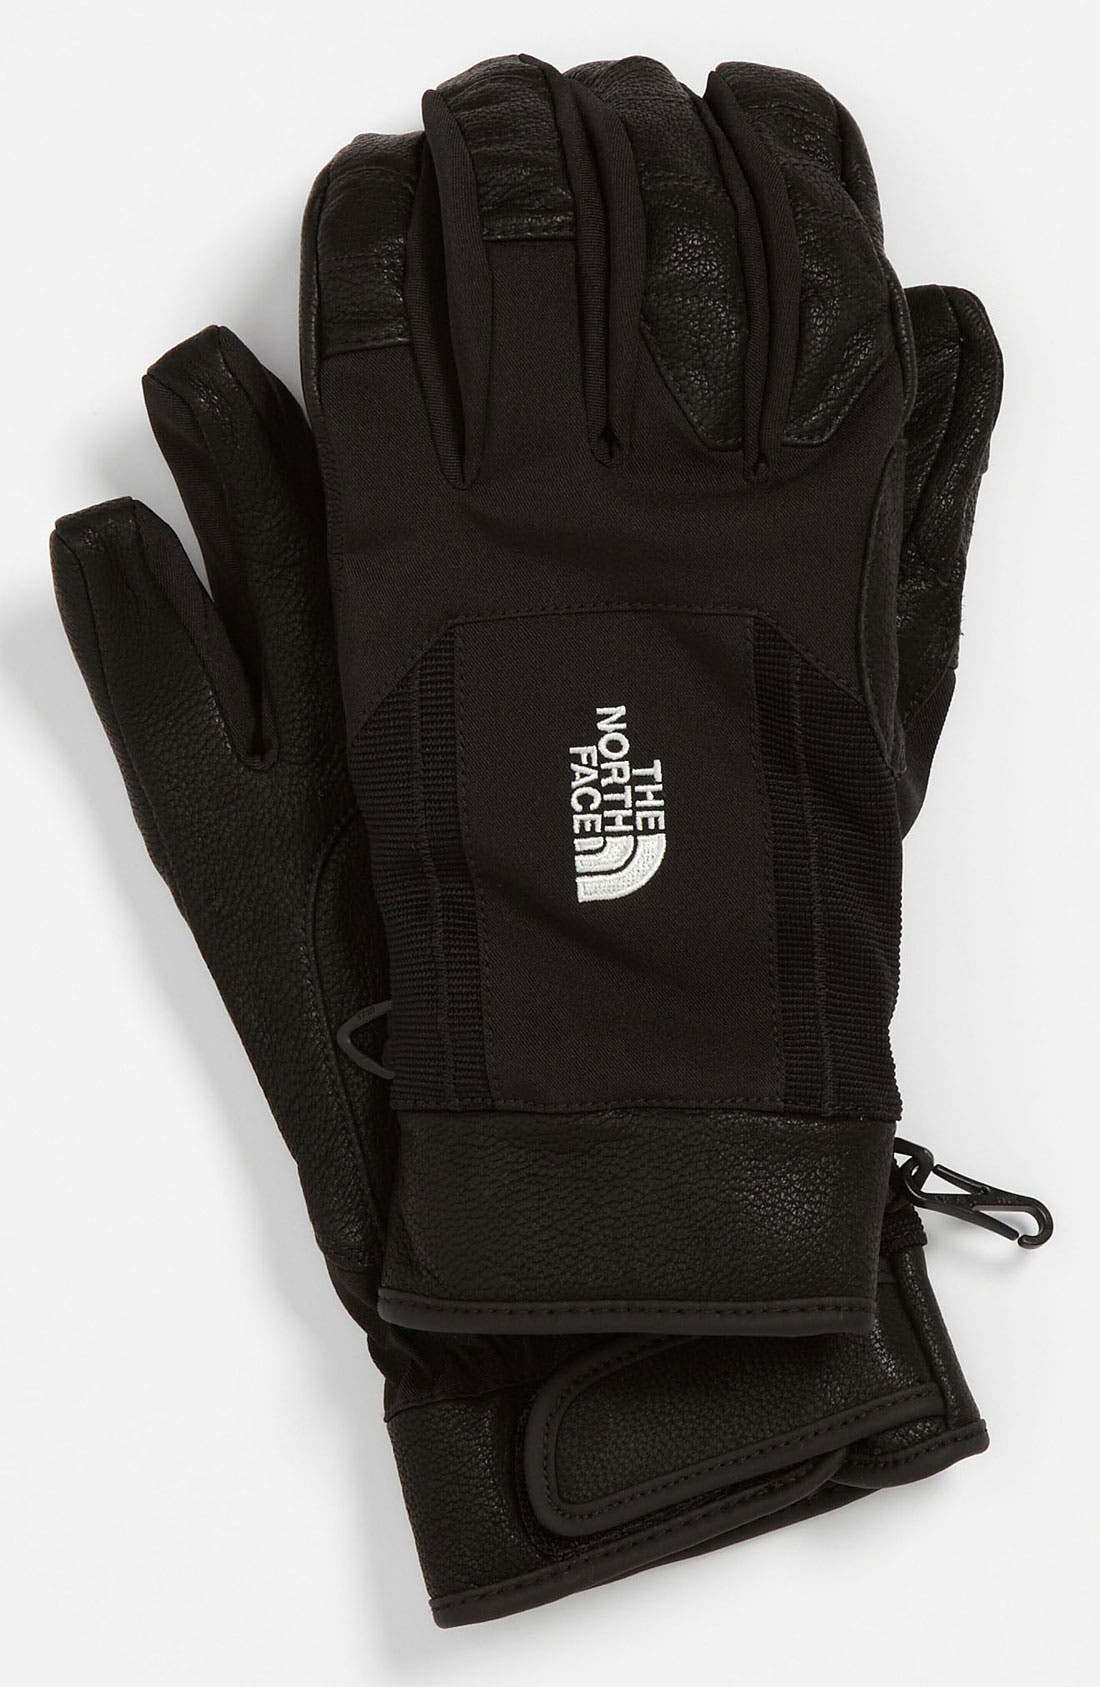 Alternate Image 1 Selected - The North Face 'Hoback' Gloves